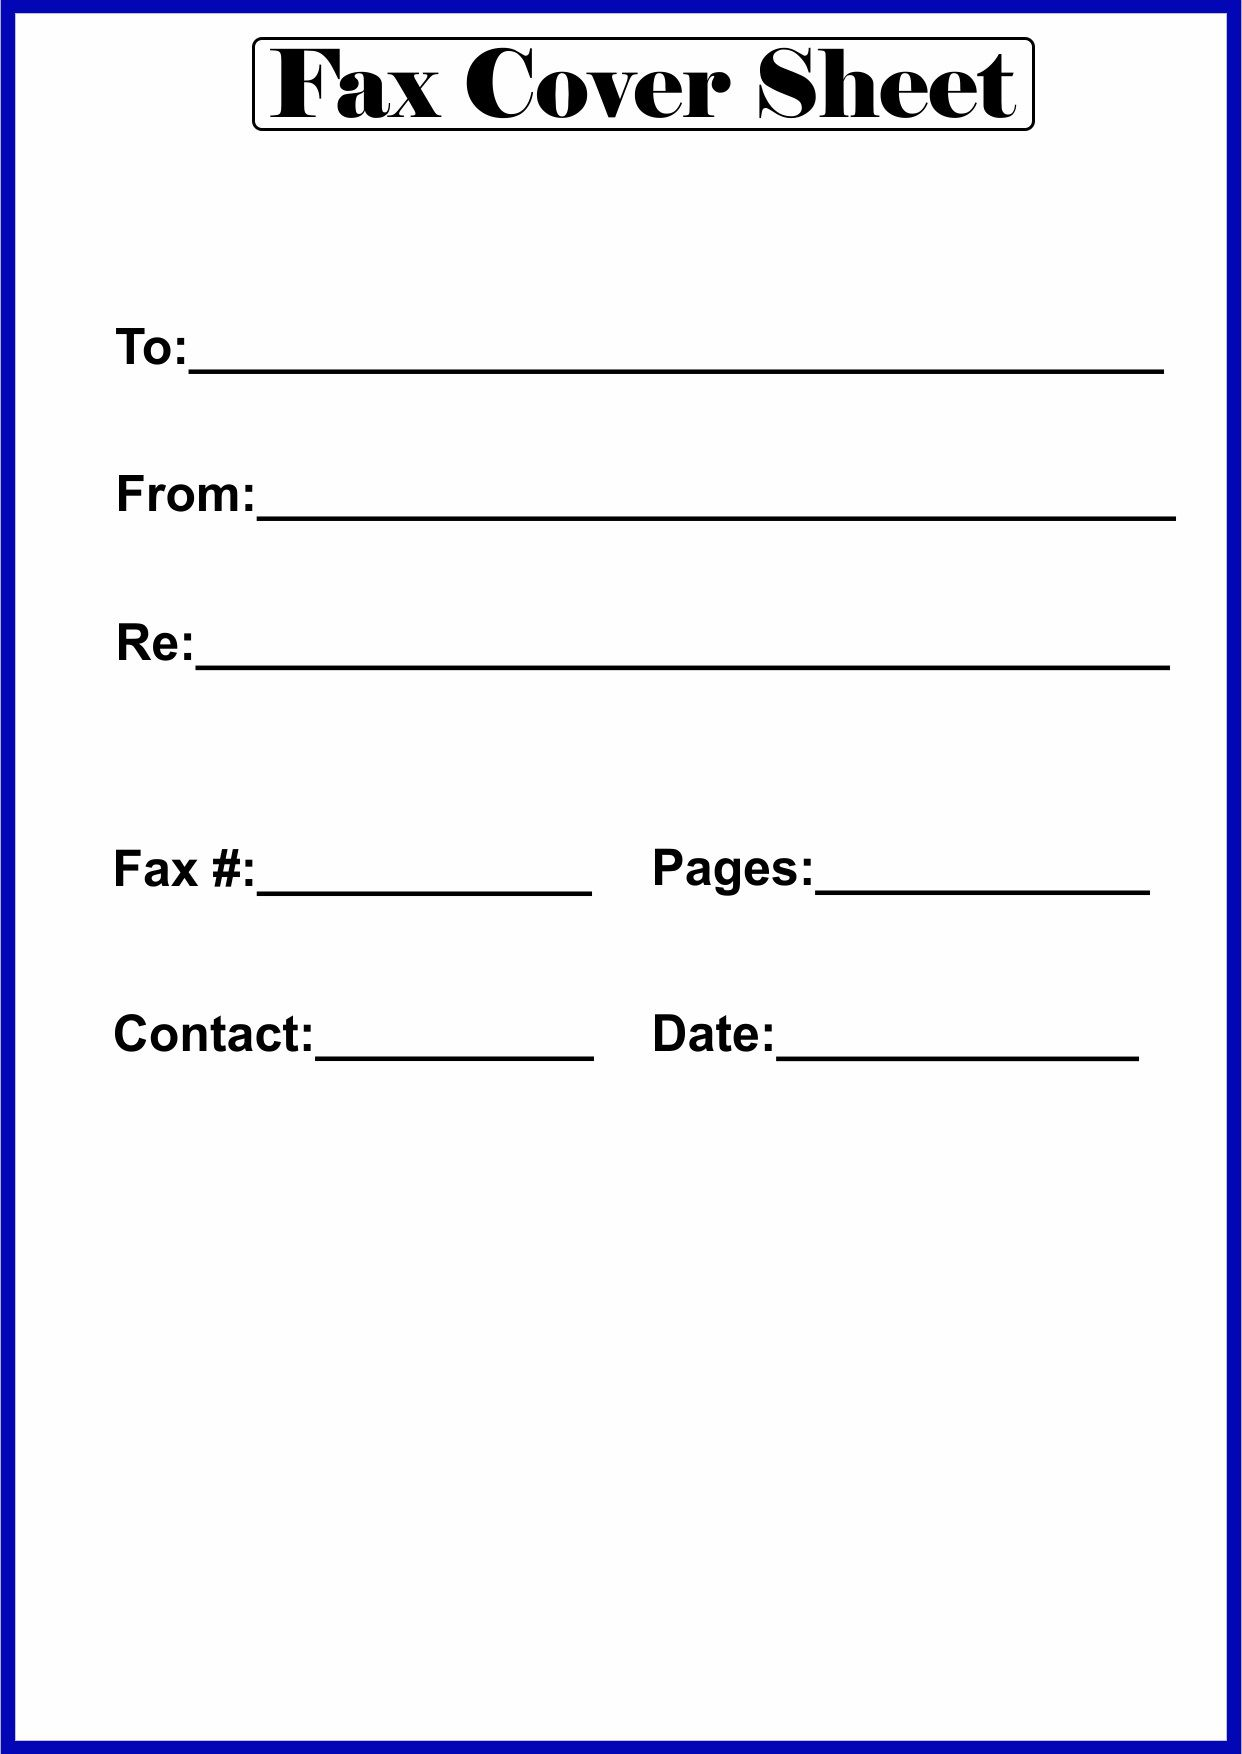 001 Rare Fax Template Microsoft Word Photo  Cover Sheet 2010 Letter BusinesFull